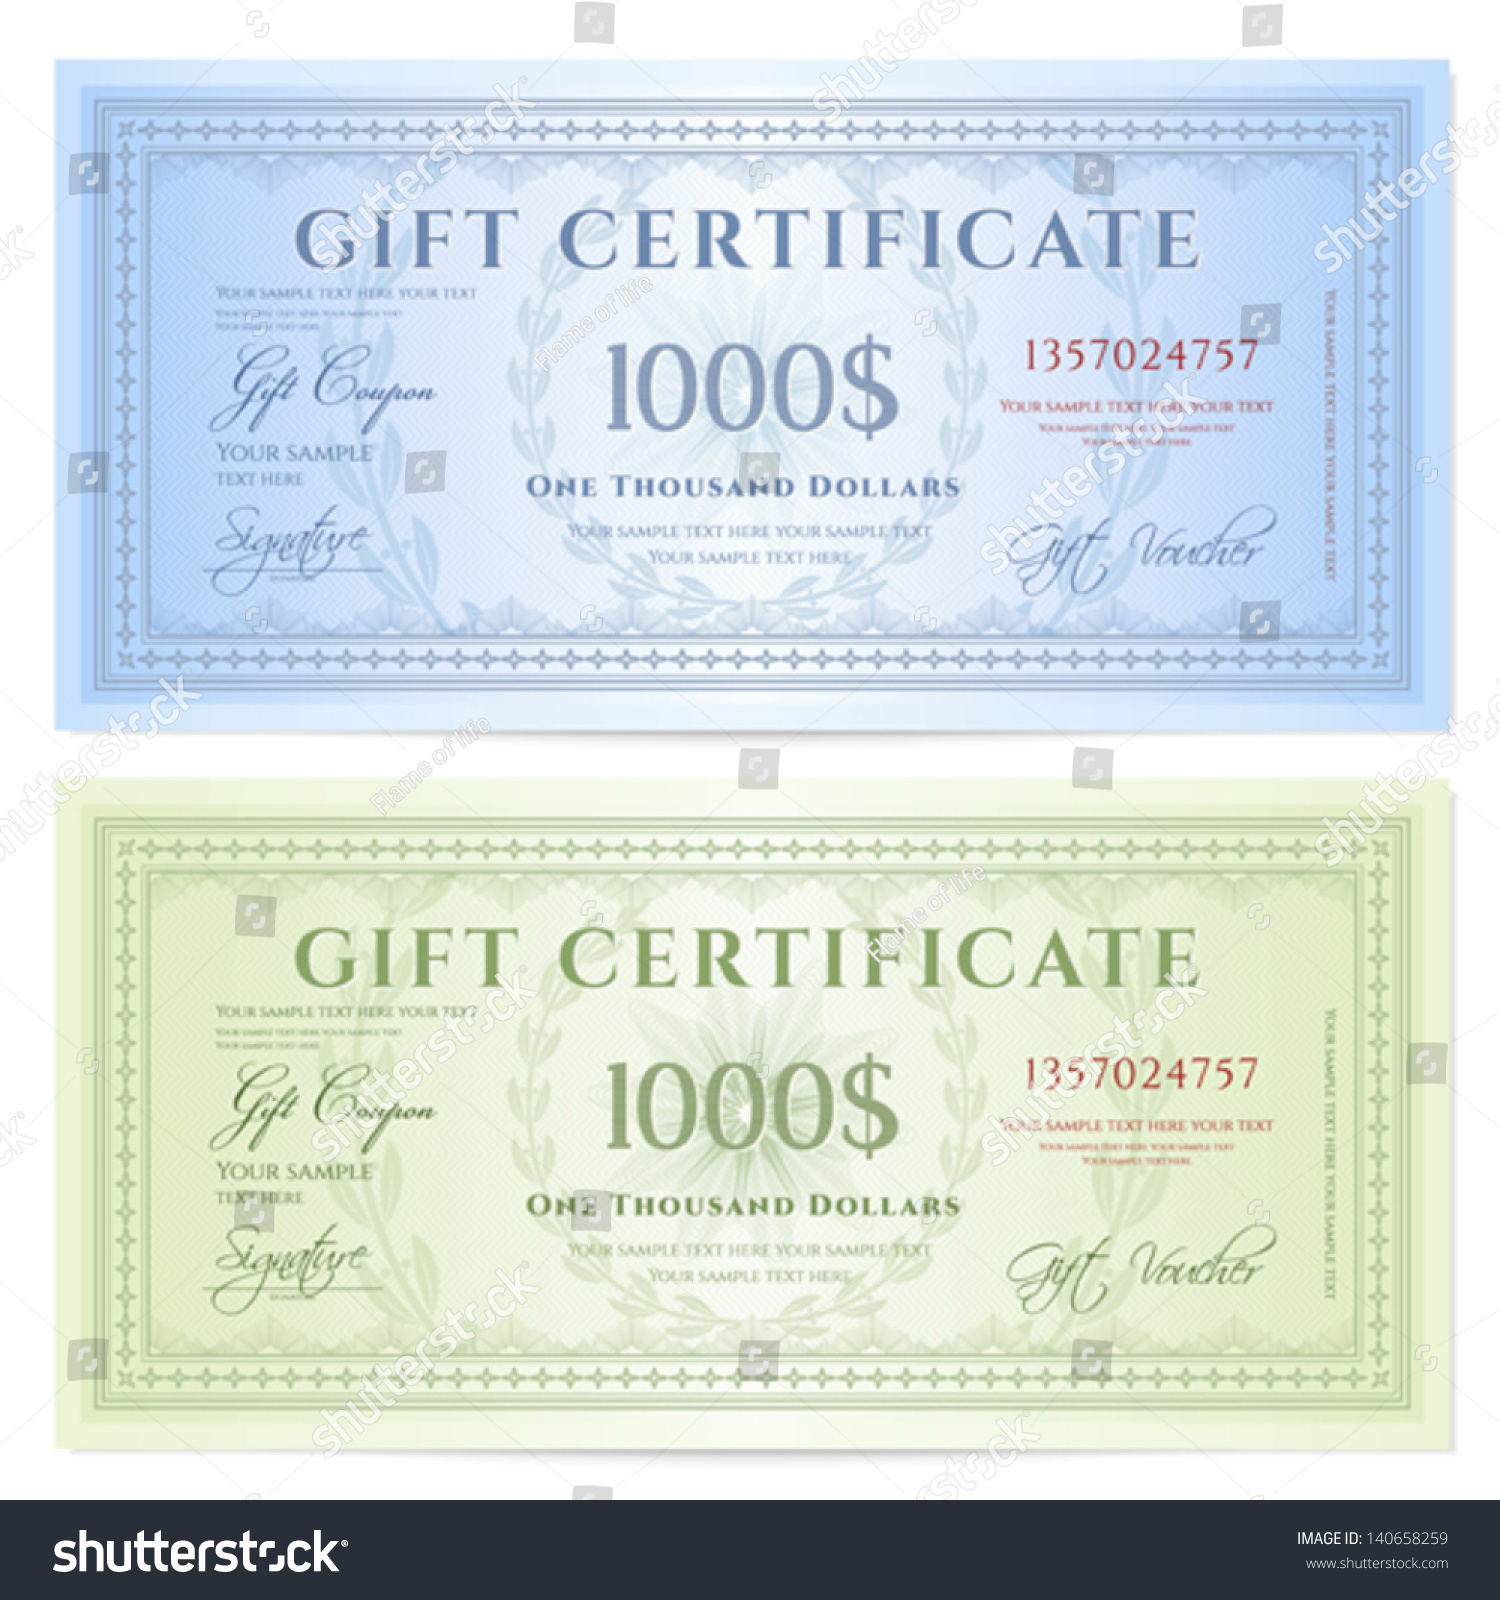 Gift certificate voucher template guilloche pattern stock vector gift certificate voucher template with guilloche pattern watermarks and border background yadclub Image collections